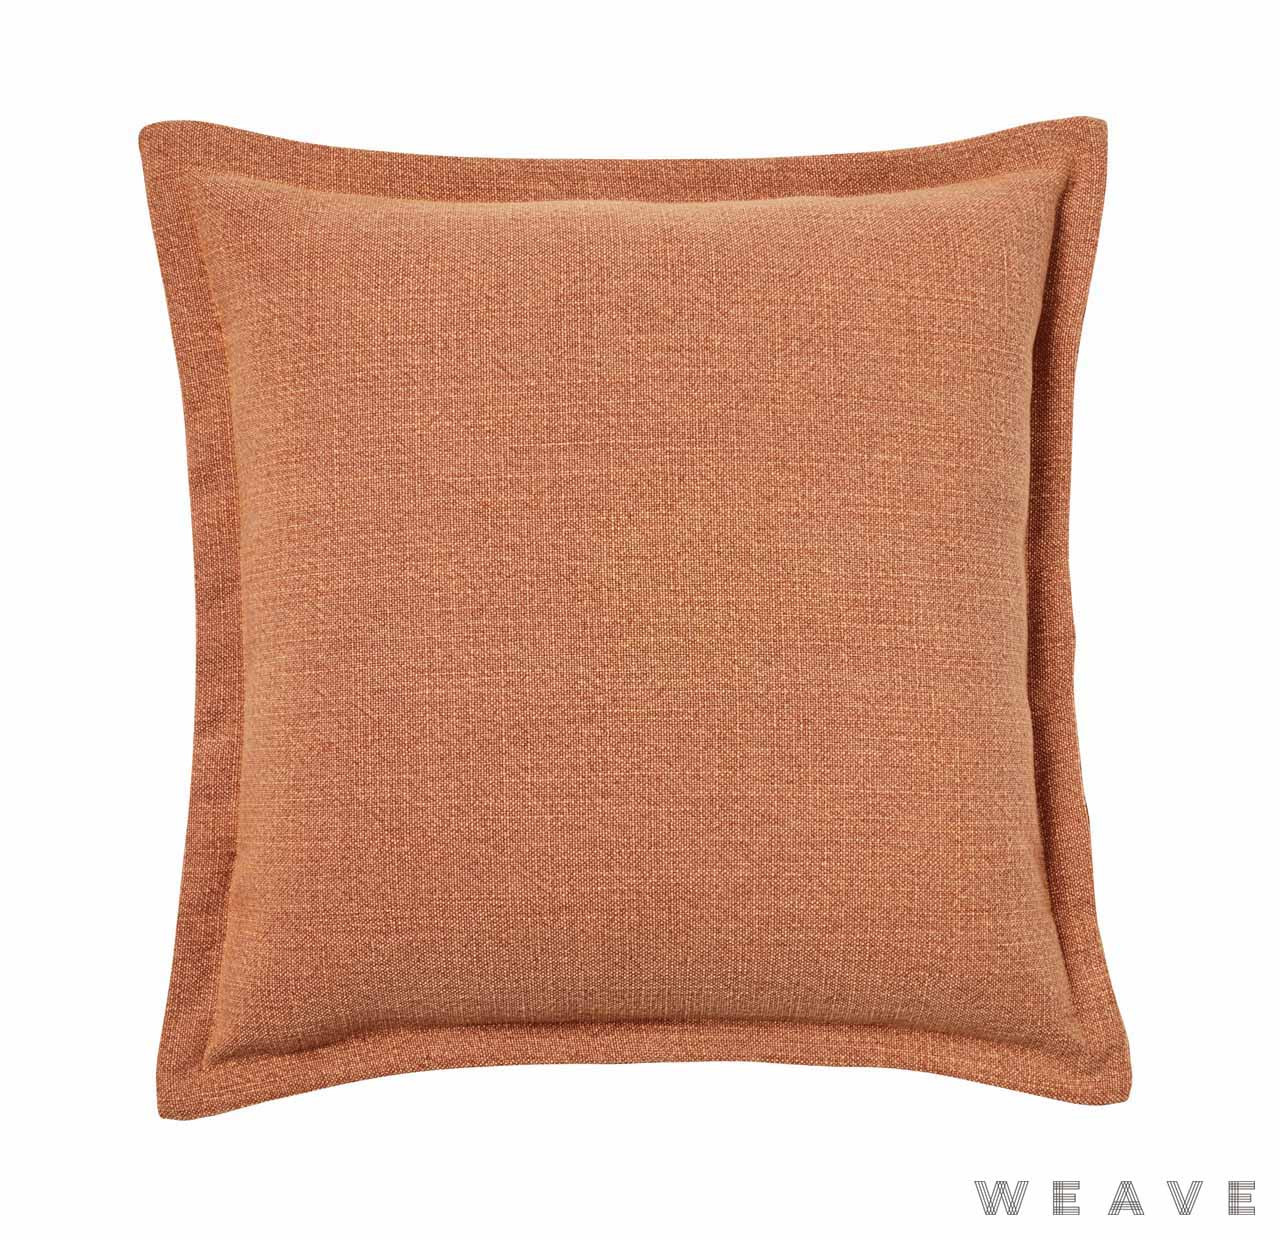 Weave - Austin Cushion - Tangerine (Pack of 2)  | Cusion Fabric - Plain, Weave